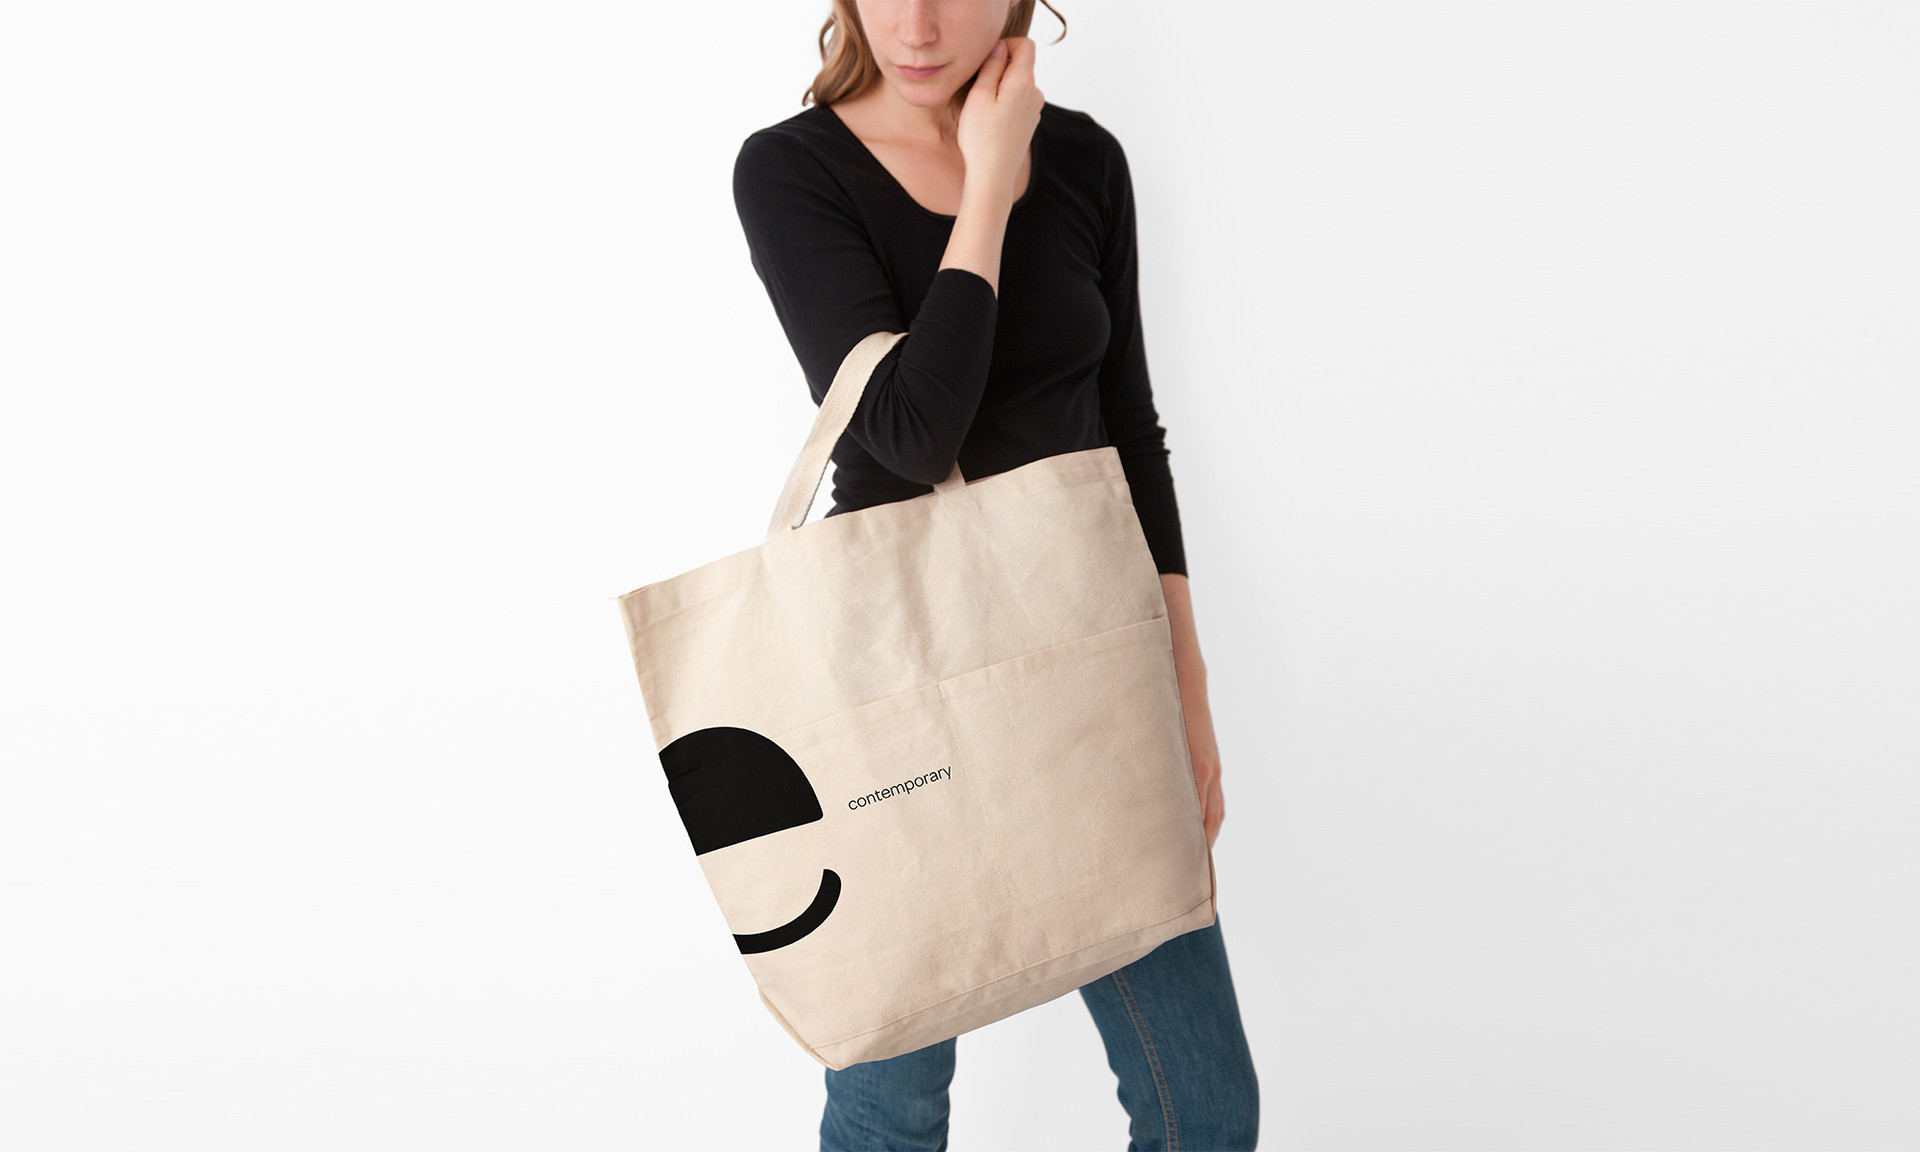 e contemporary gallery bag.jpg